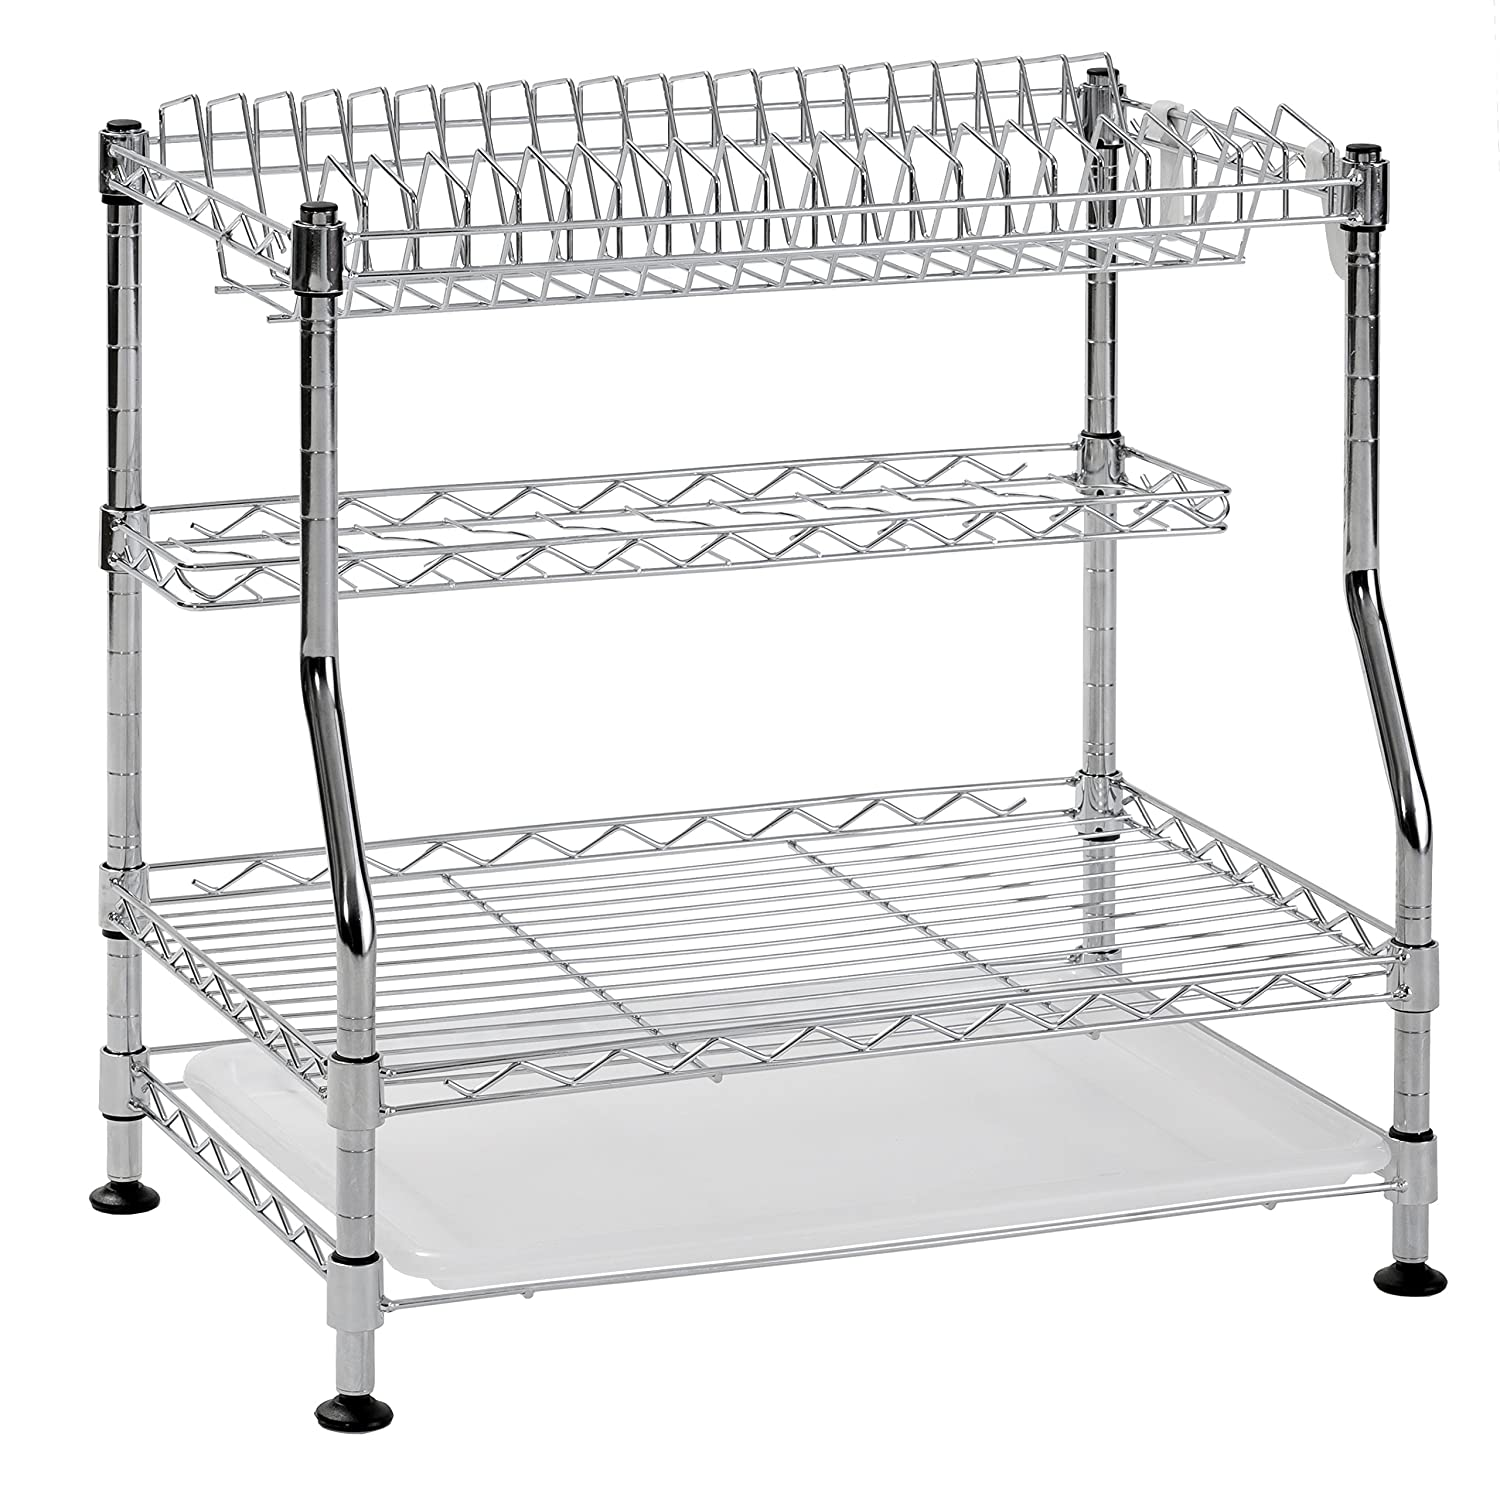 Muscle Rack WDR181217 3-Tier Wire Dish Rack, Chrome, 17 Height, 18 Width 17 Height 18 Width